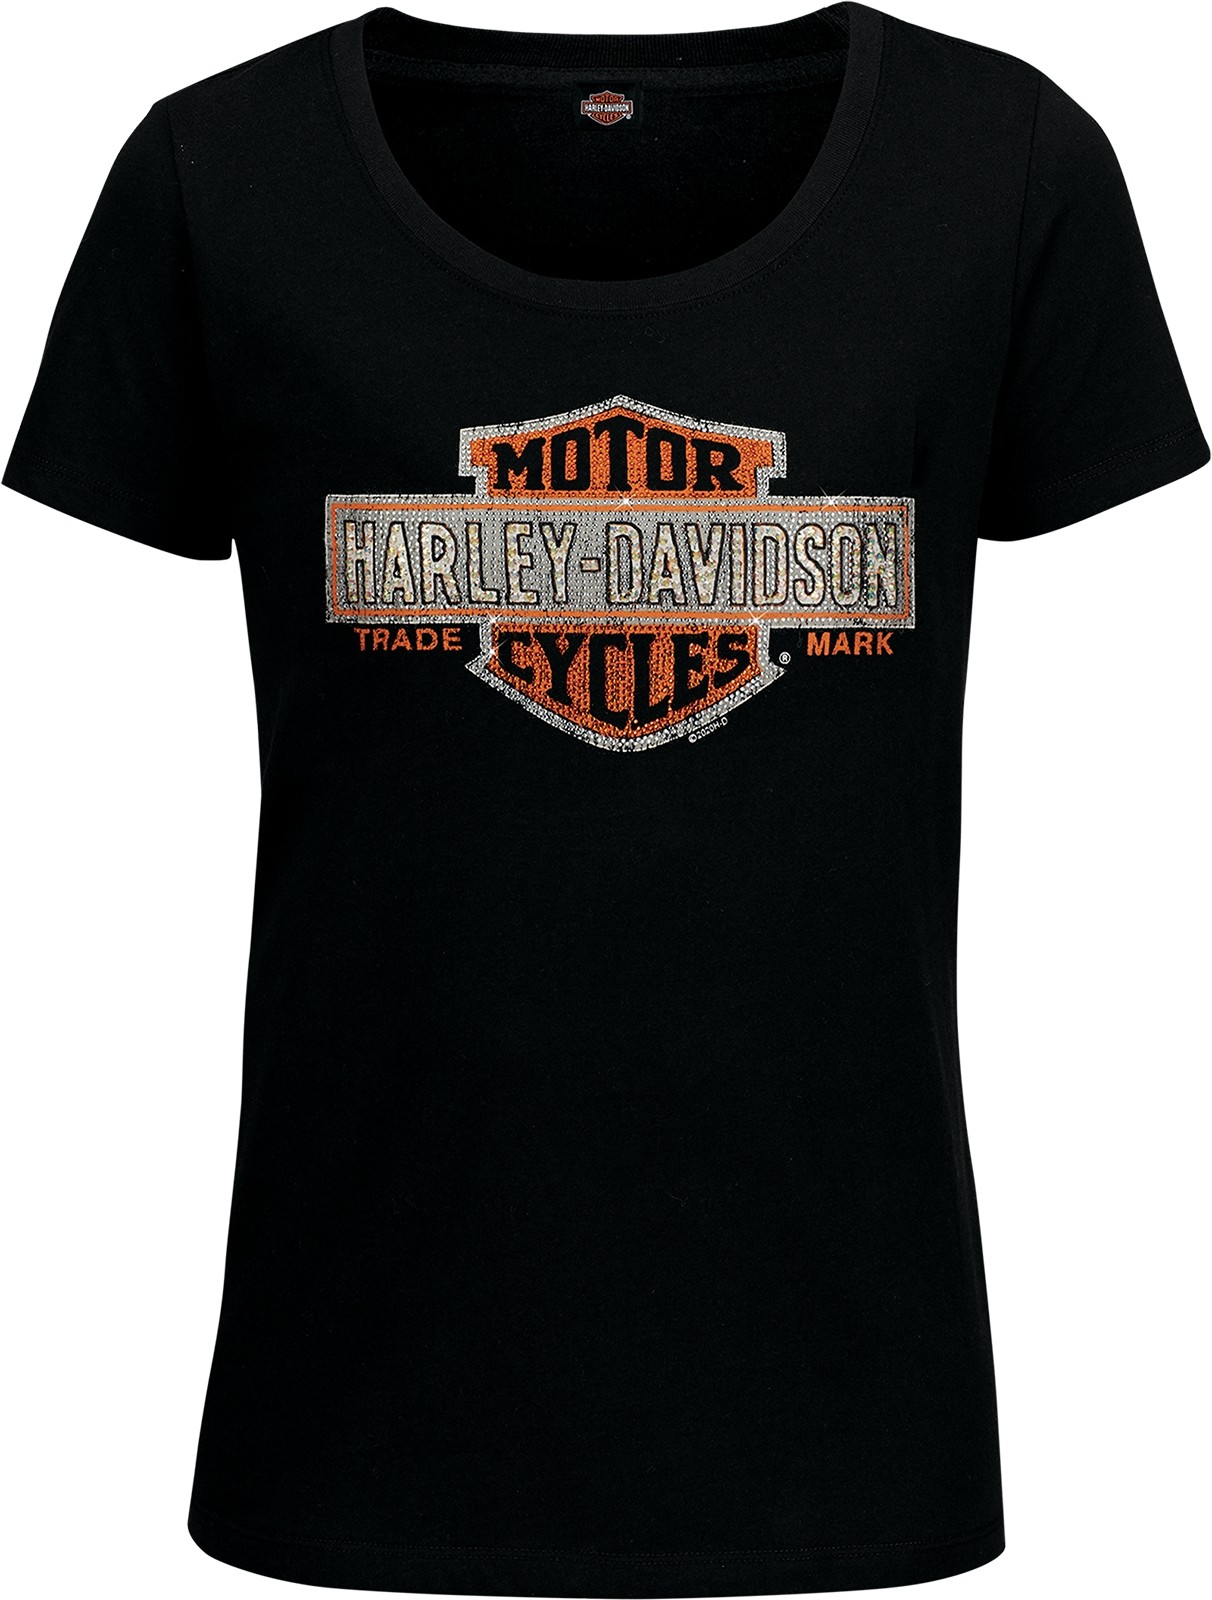 Women's Black Scoop Neck Bar and Shield T-Shirt with Rhinestones - Aviano Air Base   Multiply